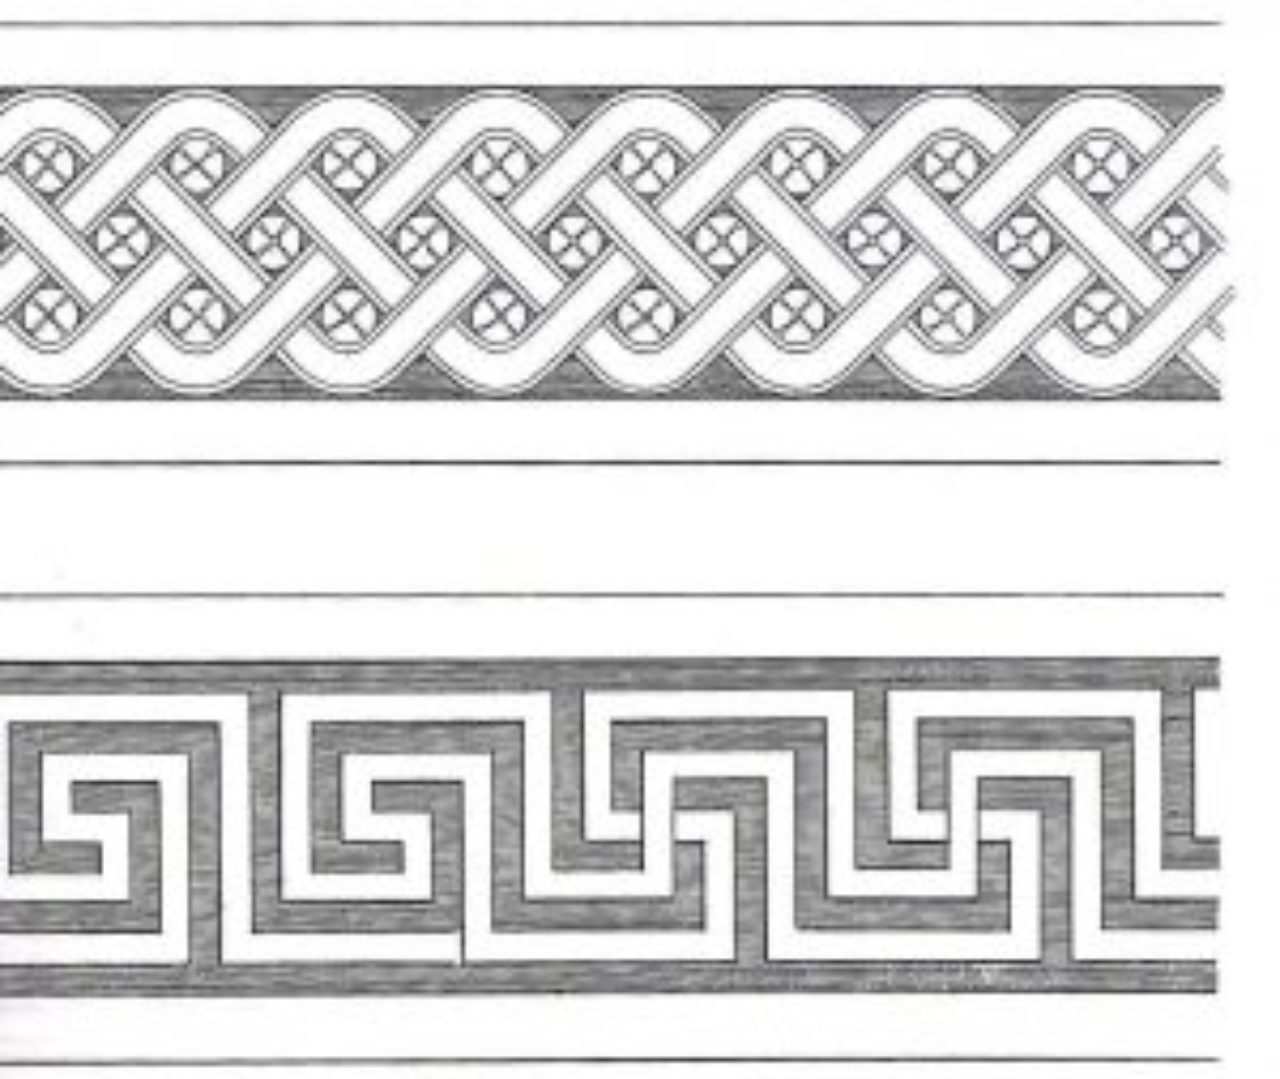 Figure 10: James Gibbs, Rules for Drawing the Several Parts of Architecture, Plate LIX, (detail)